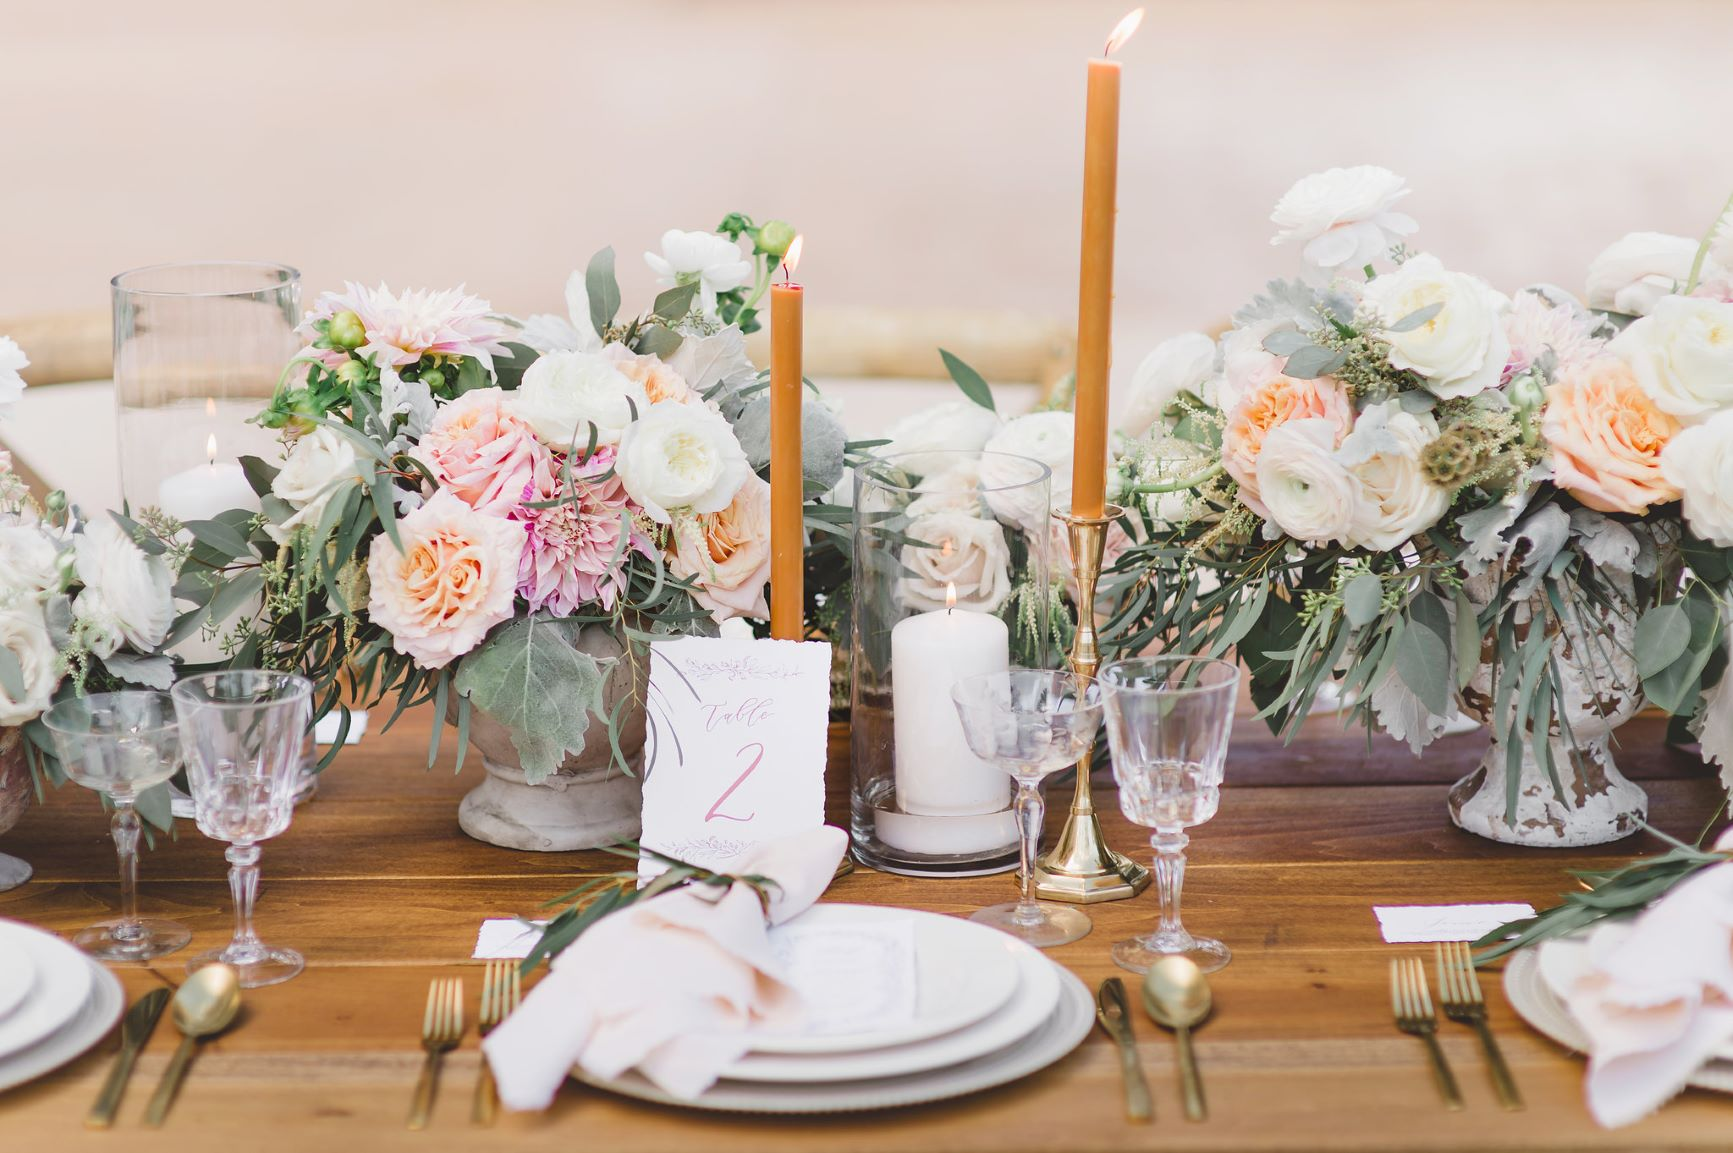 Centerpieces with peach, white and pink flowers